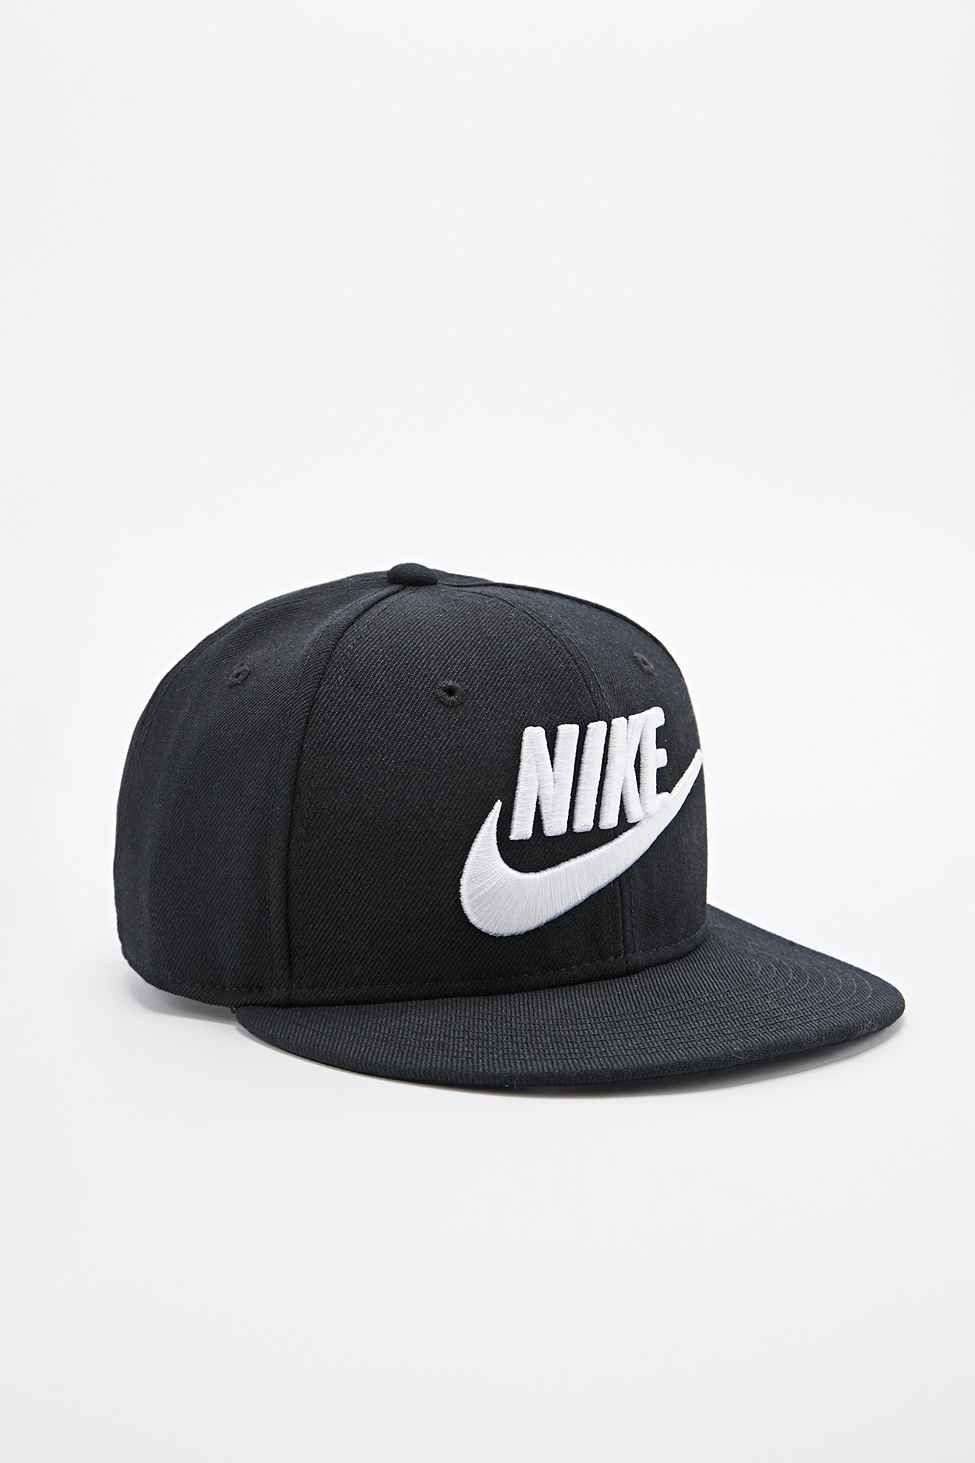 Nike Snapback Cap in Black - Urban Outfitters  8417c65598d